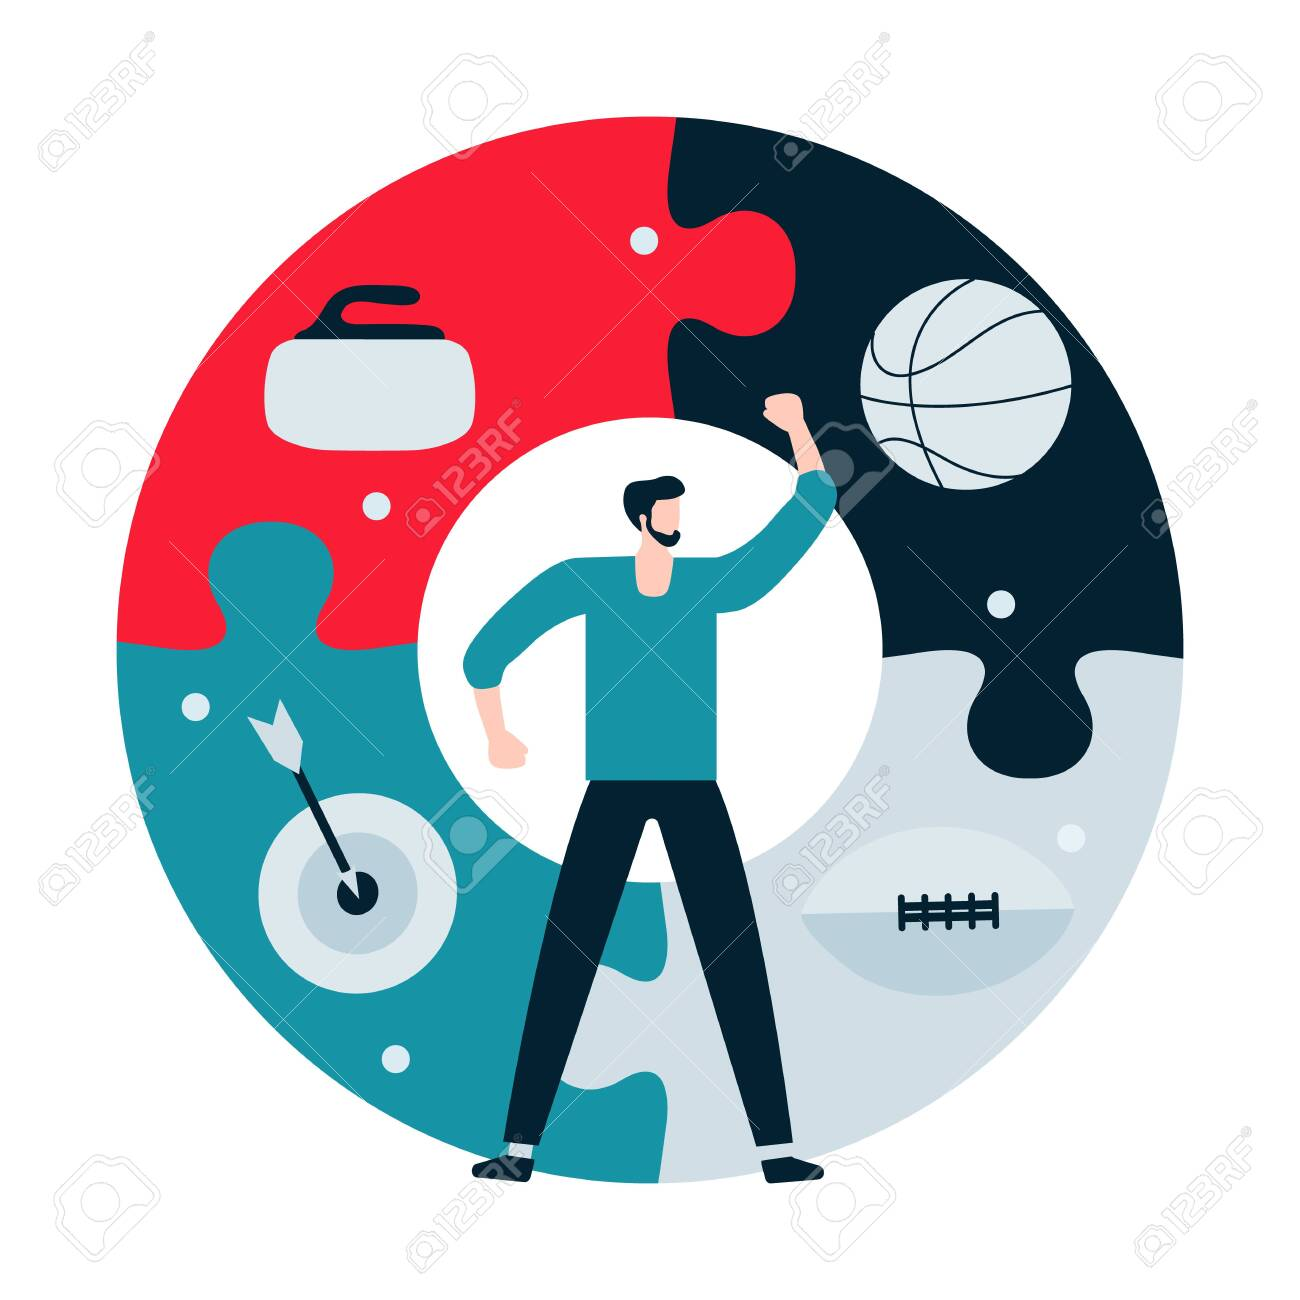 Vector illustration with man, puzzle, basketball ball, american